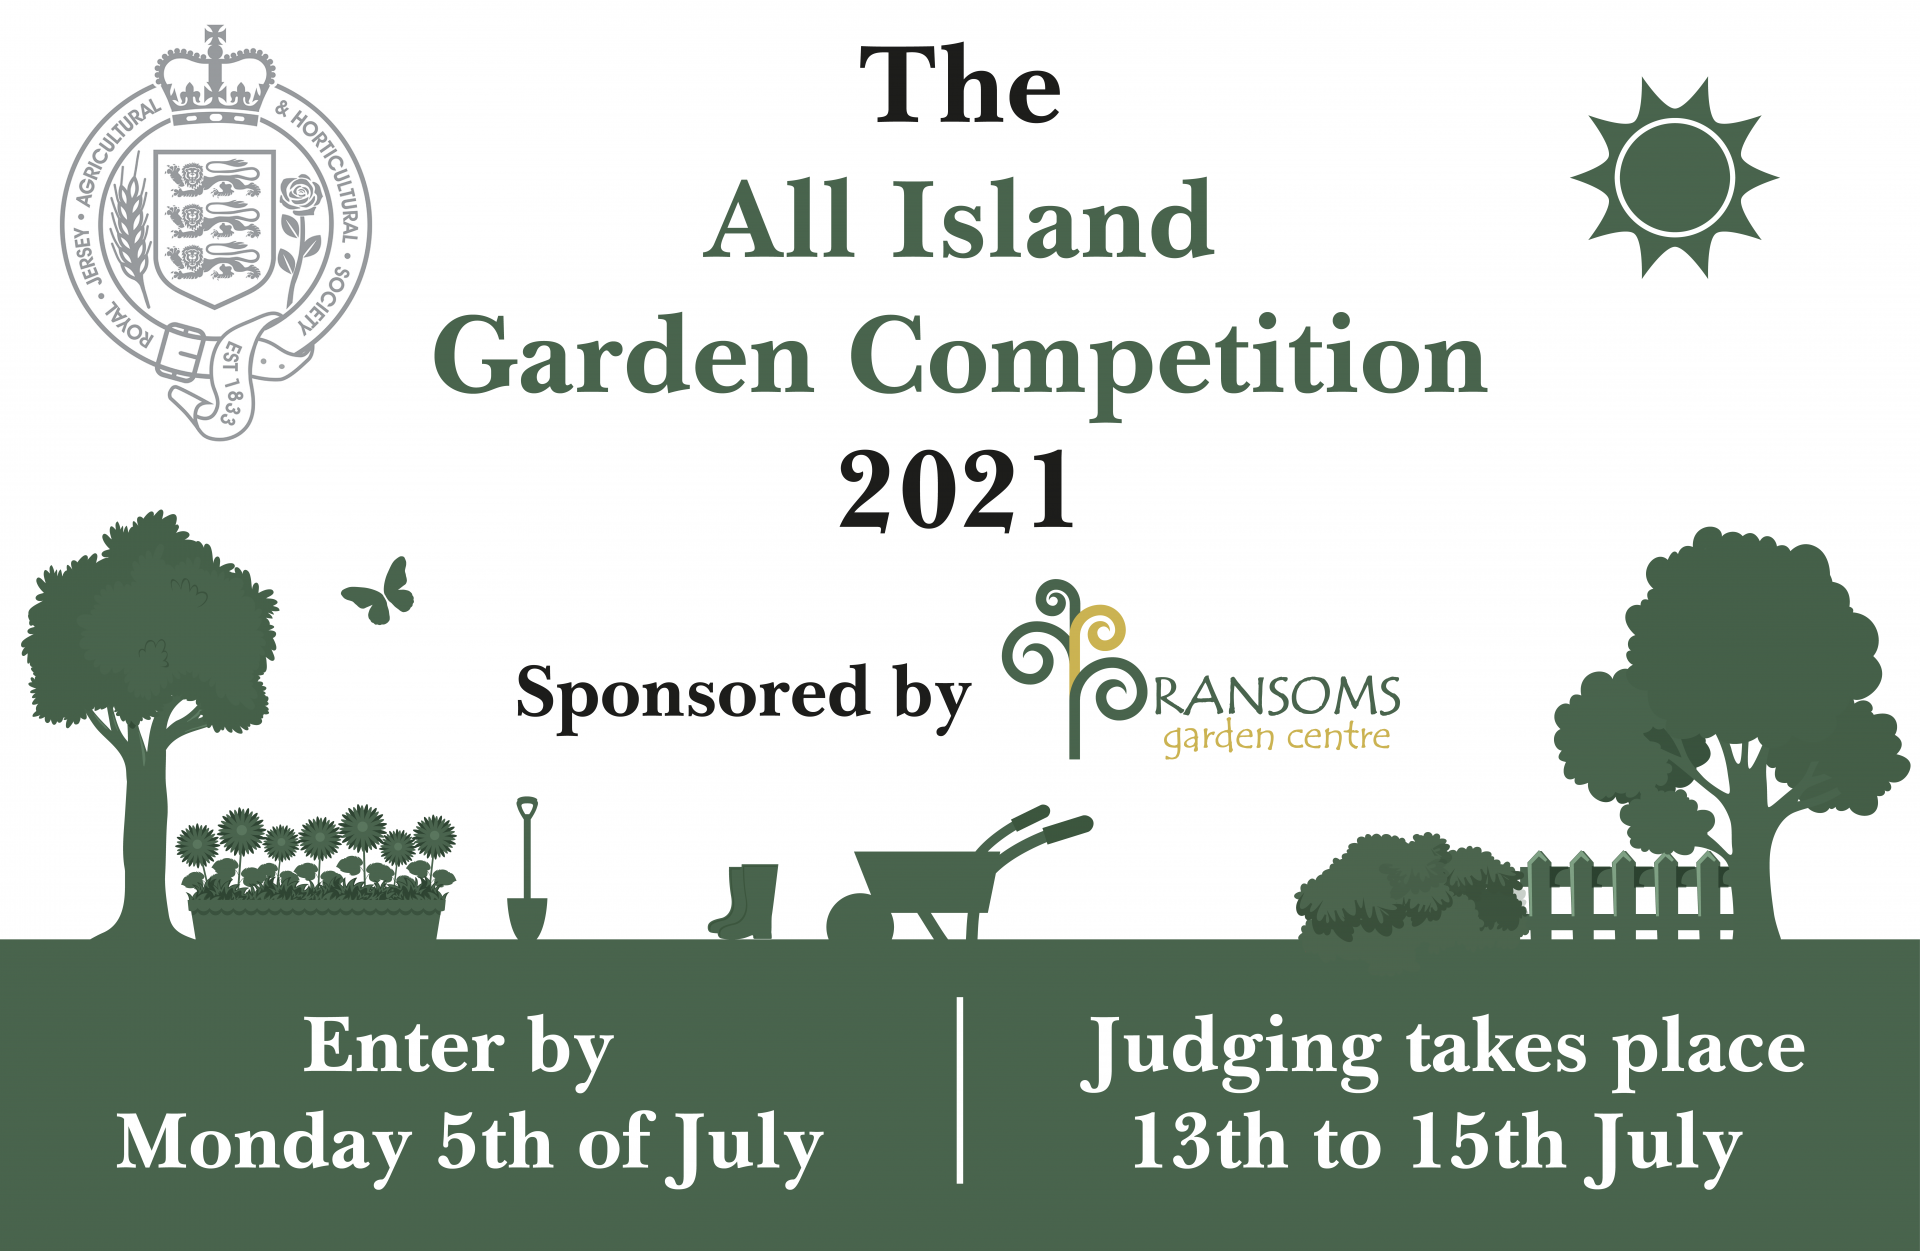 Jersey All Island Garden Competition 2021